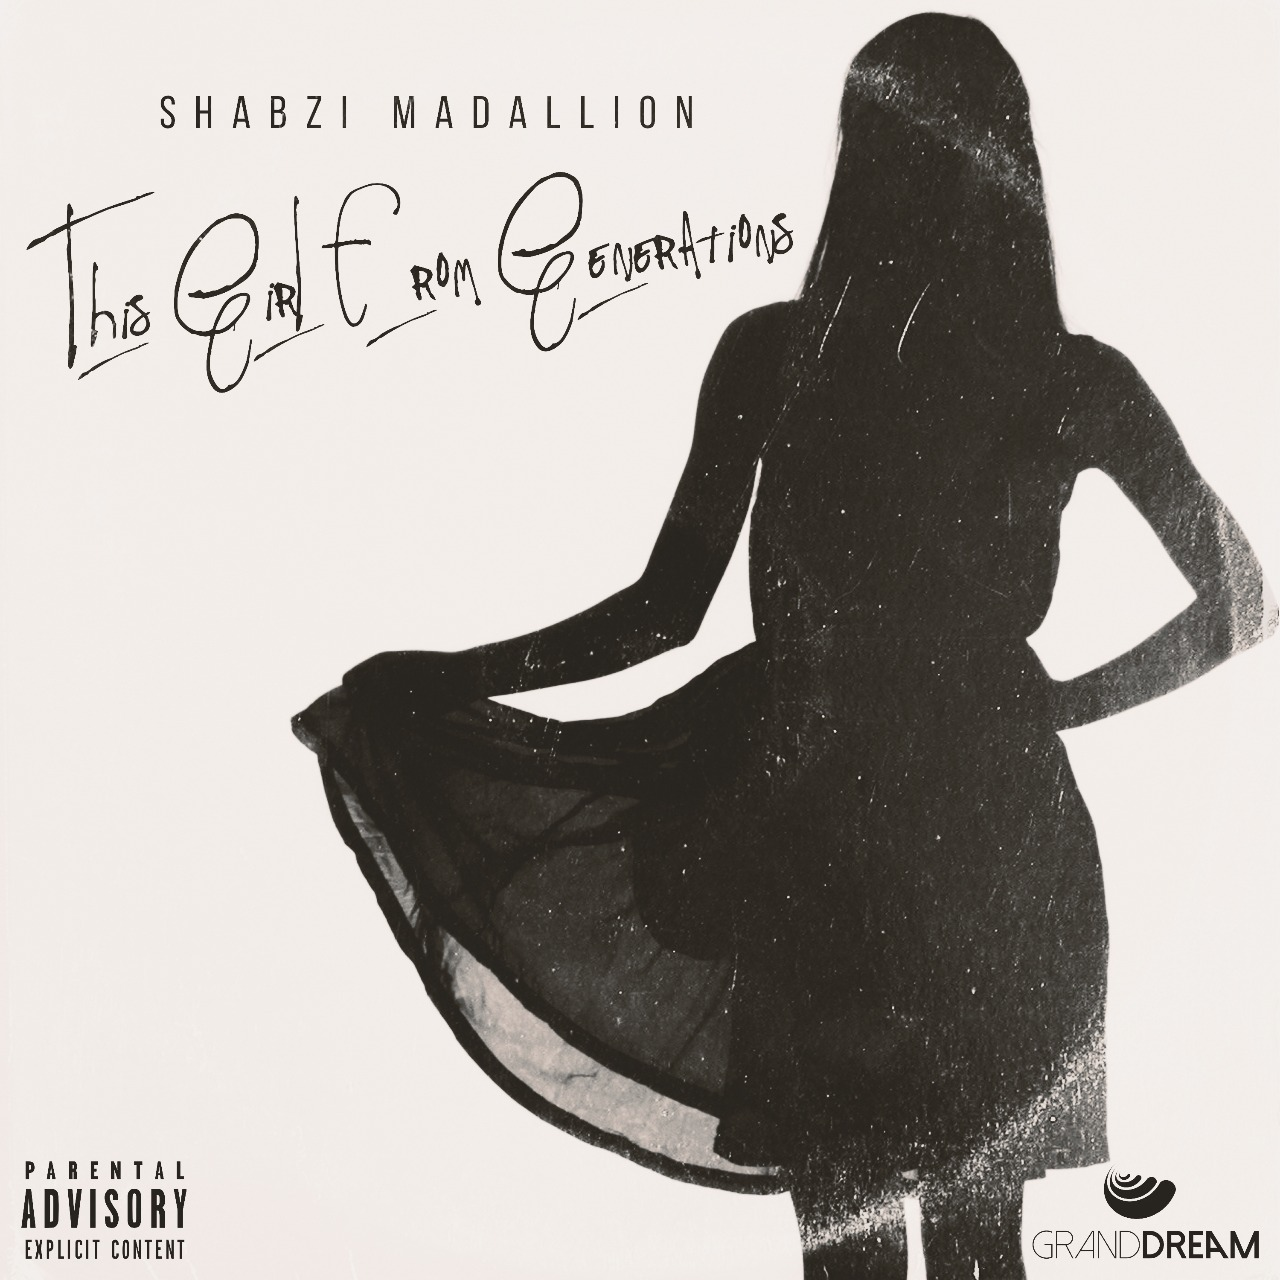 shabzi madallion Listen To Shabzi Madallion's New 'This Girl From Generations' Song ShabZi Madallion This Girl From Generations